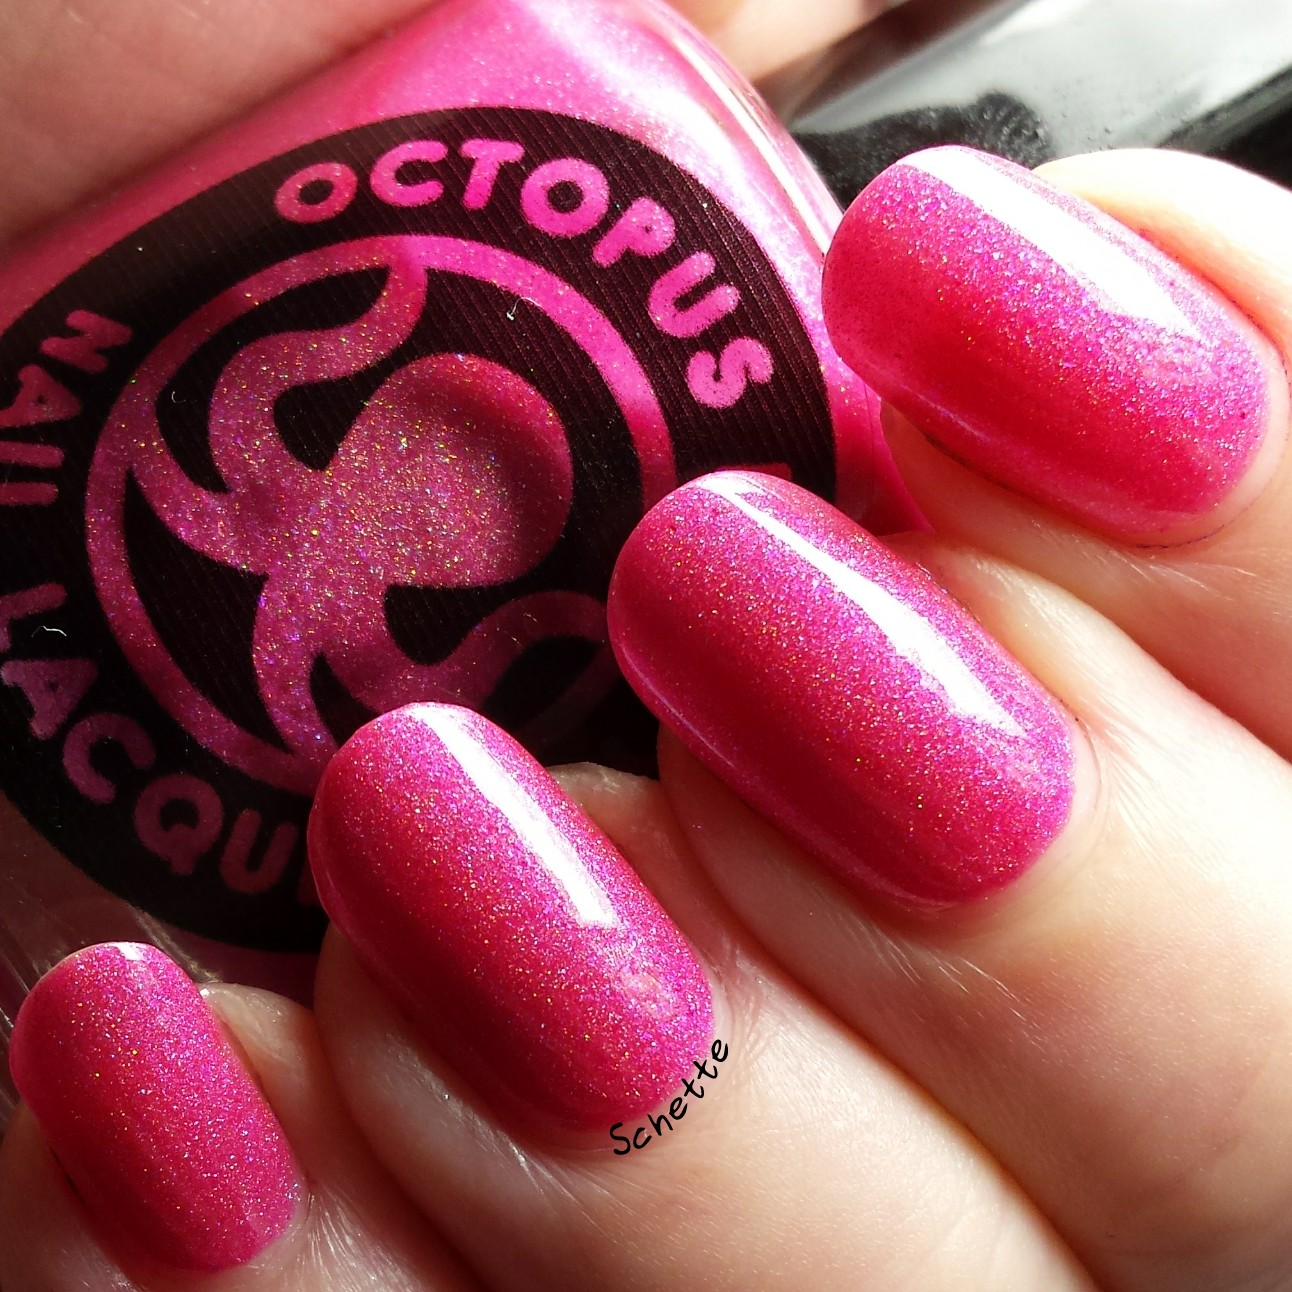 Octopus Party Nail Lacquer : It Finally Happened